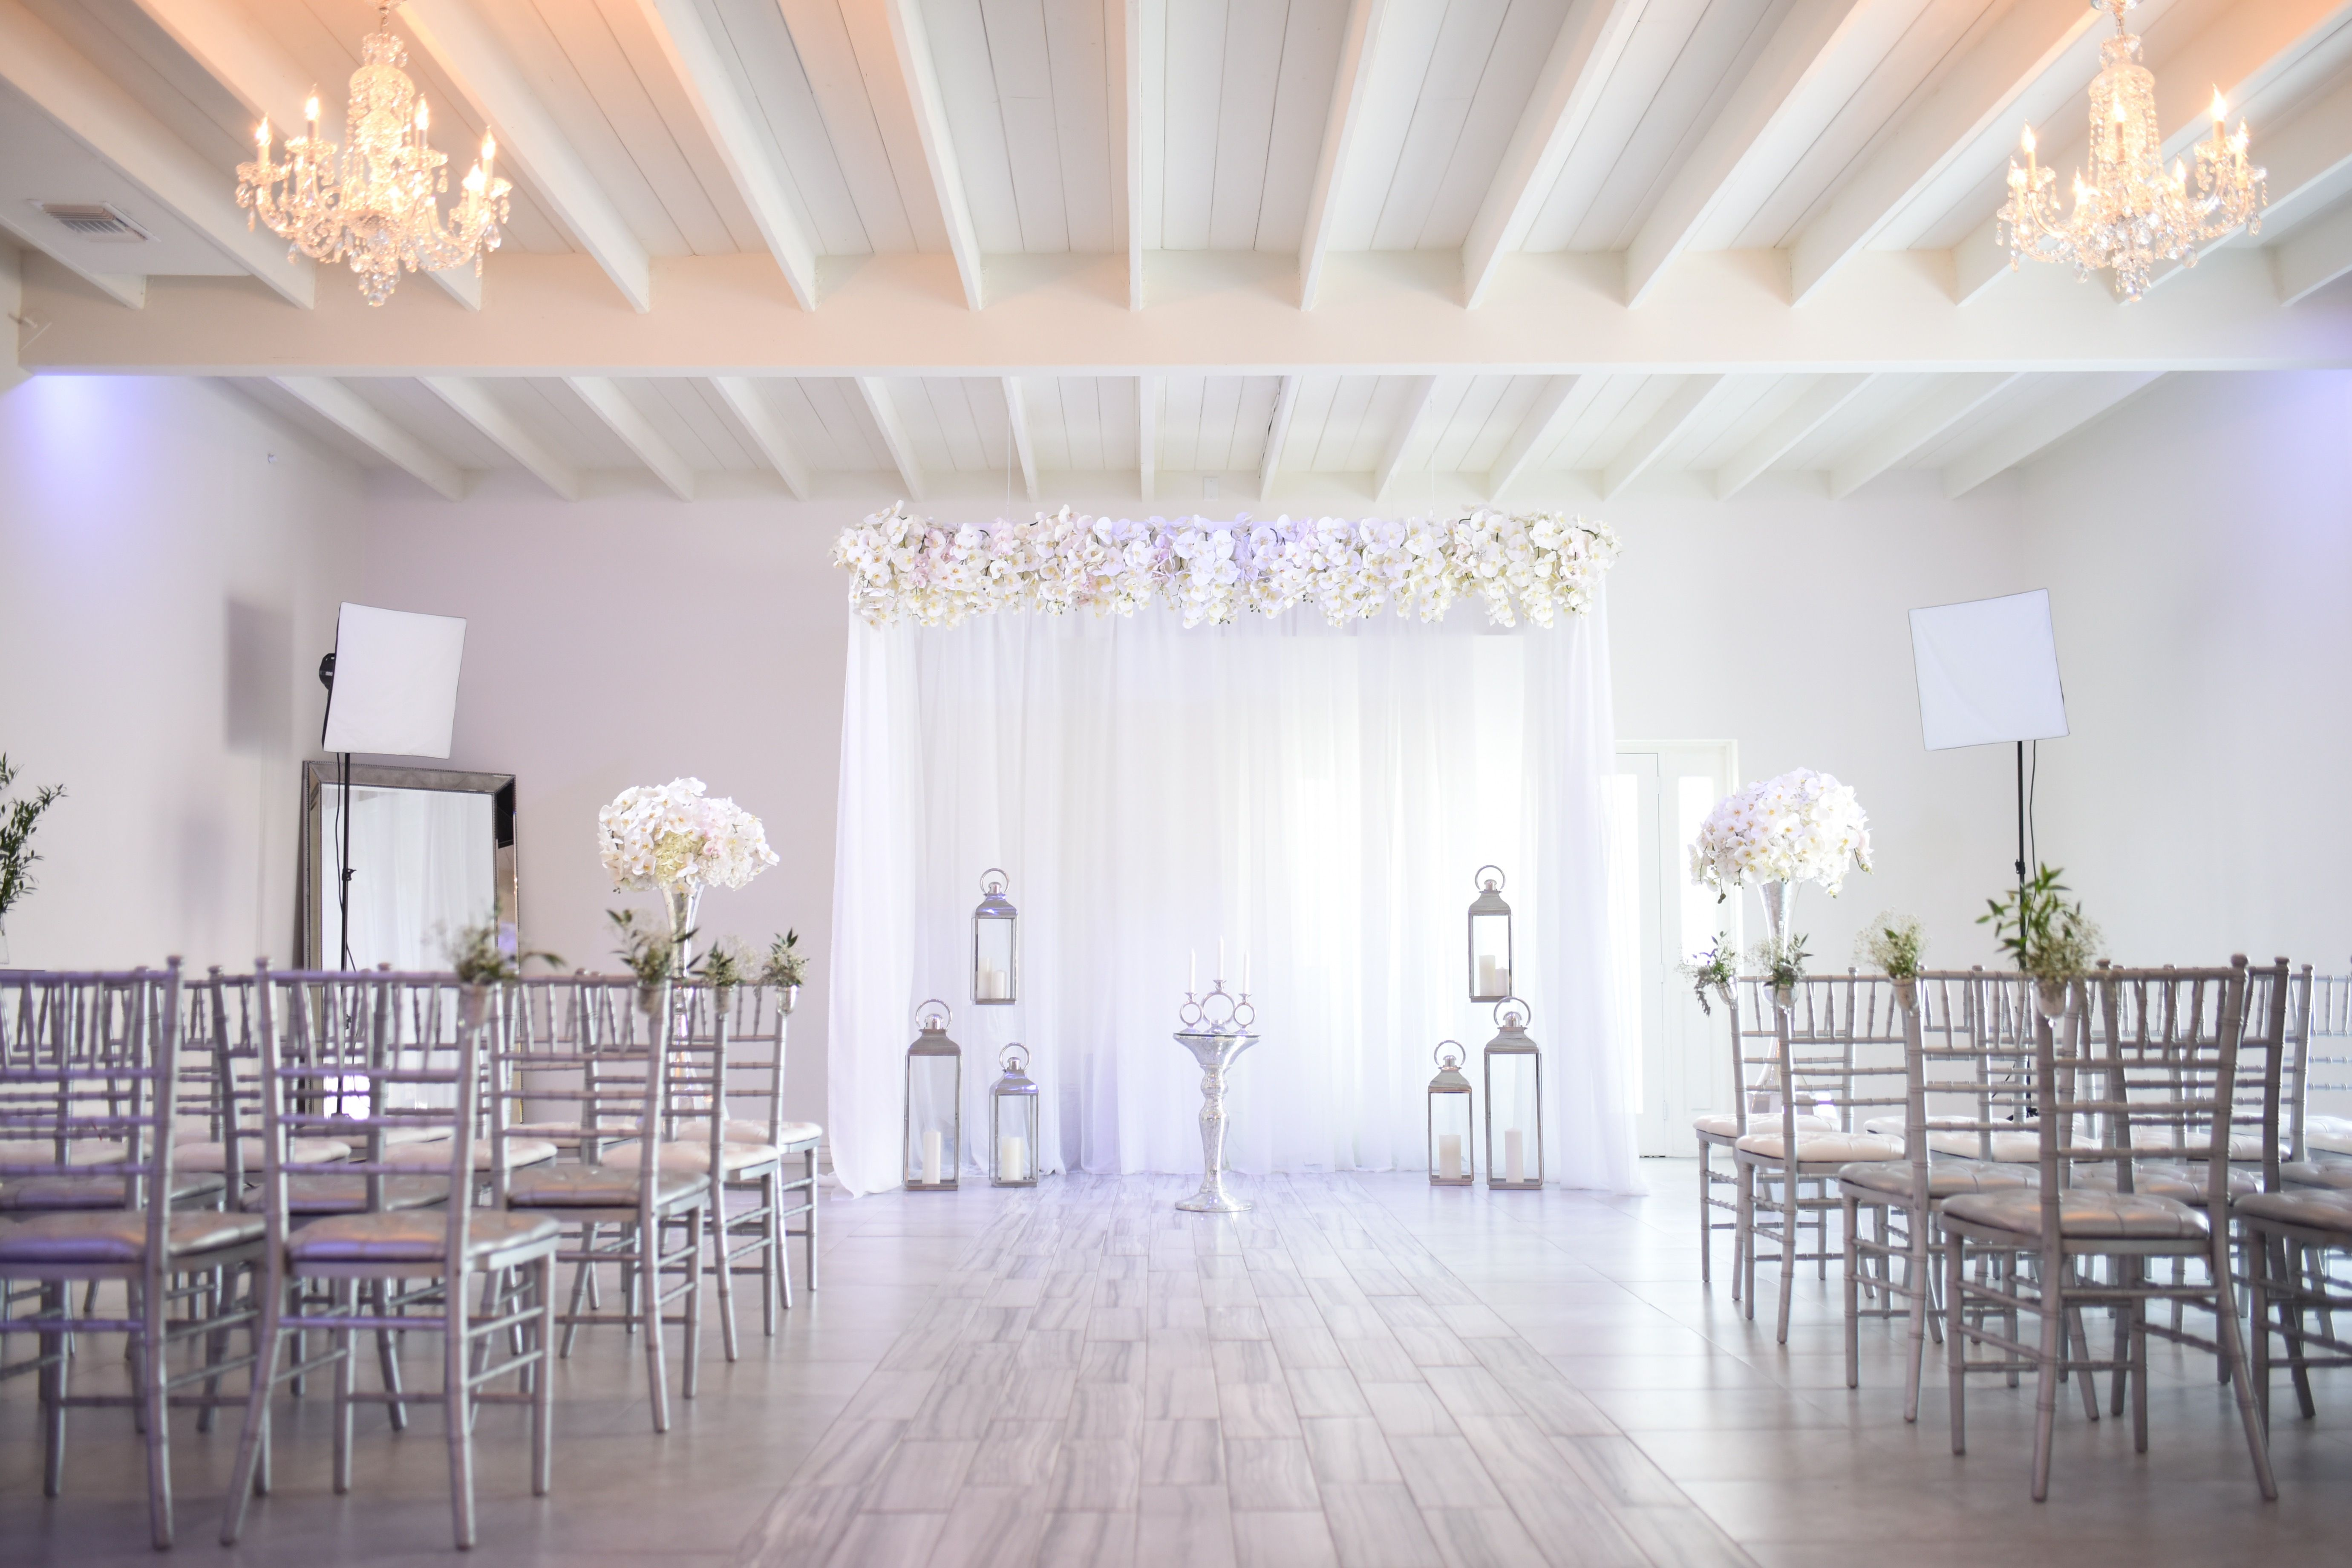 Pin By Mayra Cristina Saucedo On It Can Happen Nothing Flashy Small And Classy Chapel Wedding Affordable Wedding Packages Intimate Weddings